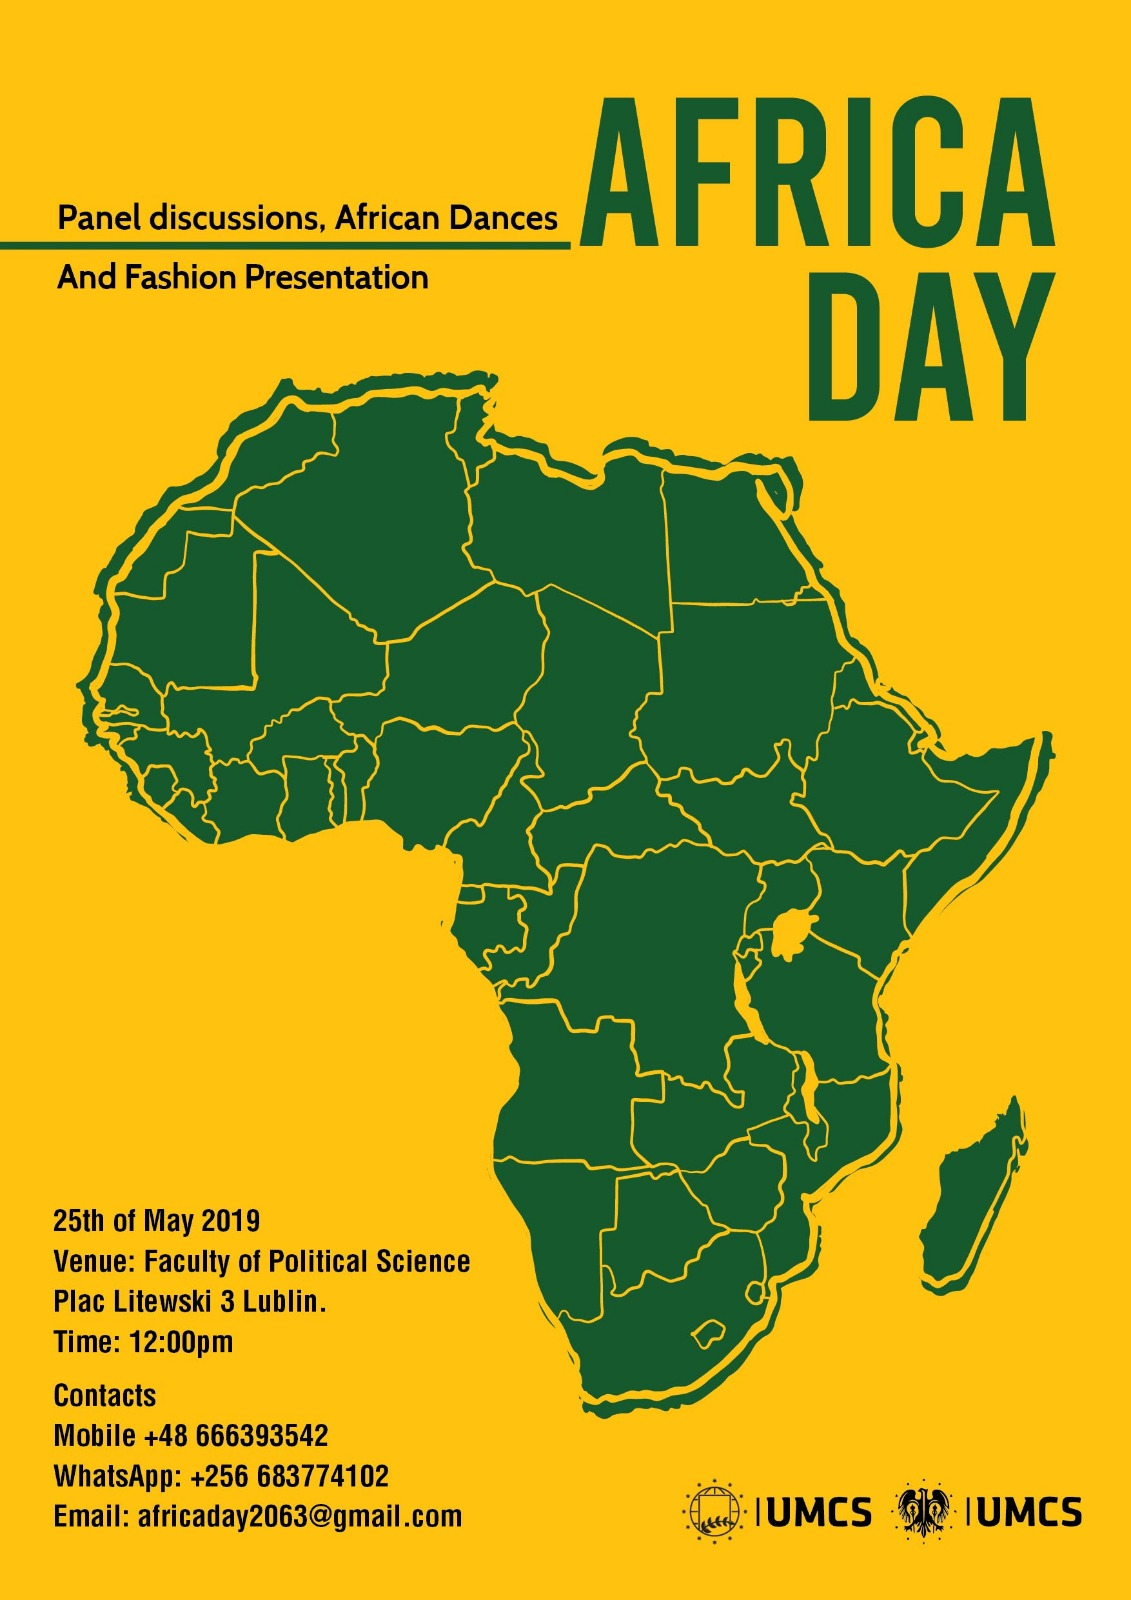 Africa Day. Panel discussions, African Dances and Fashion Presentation